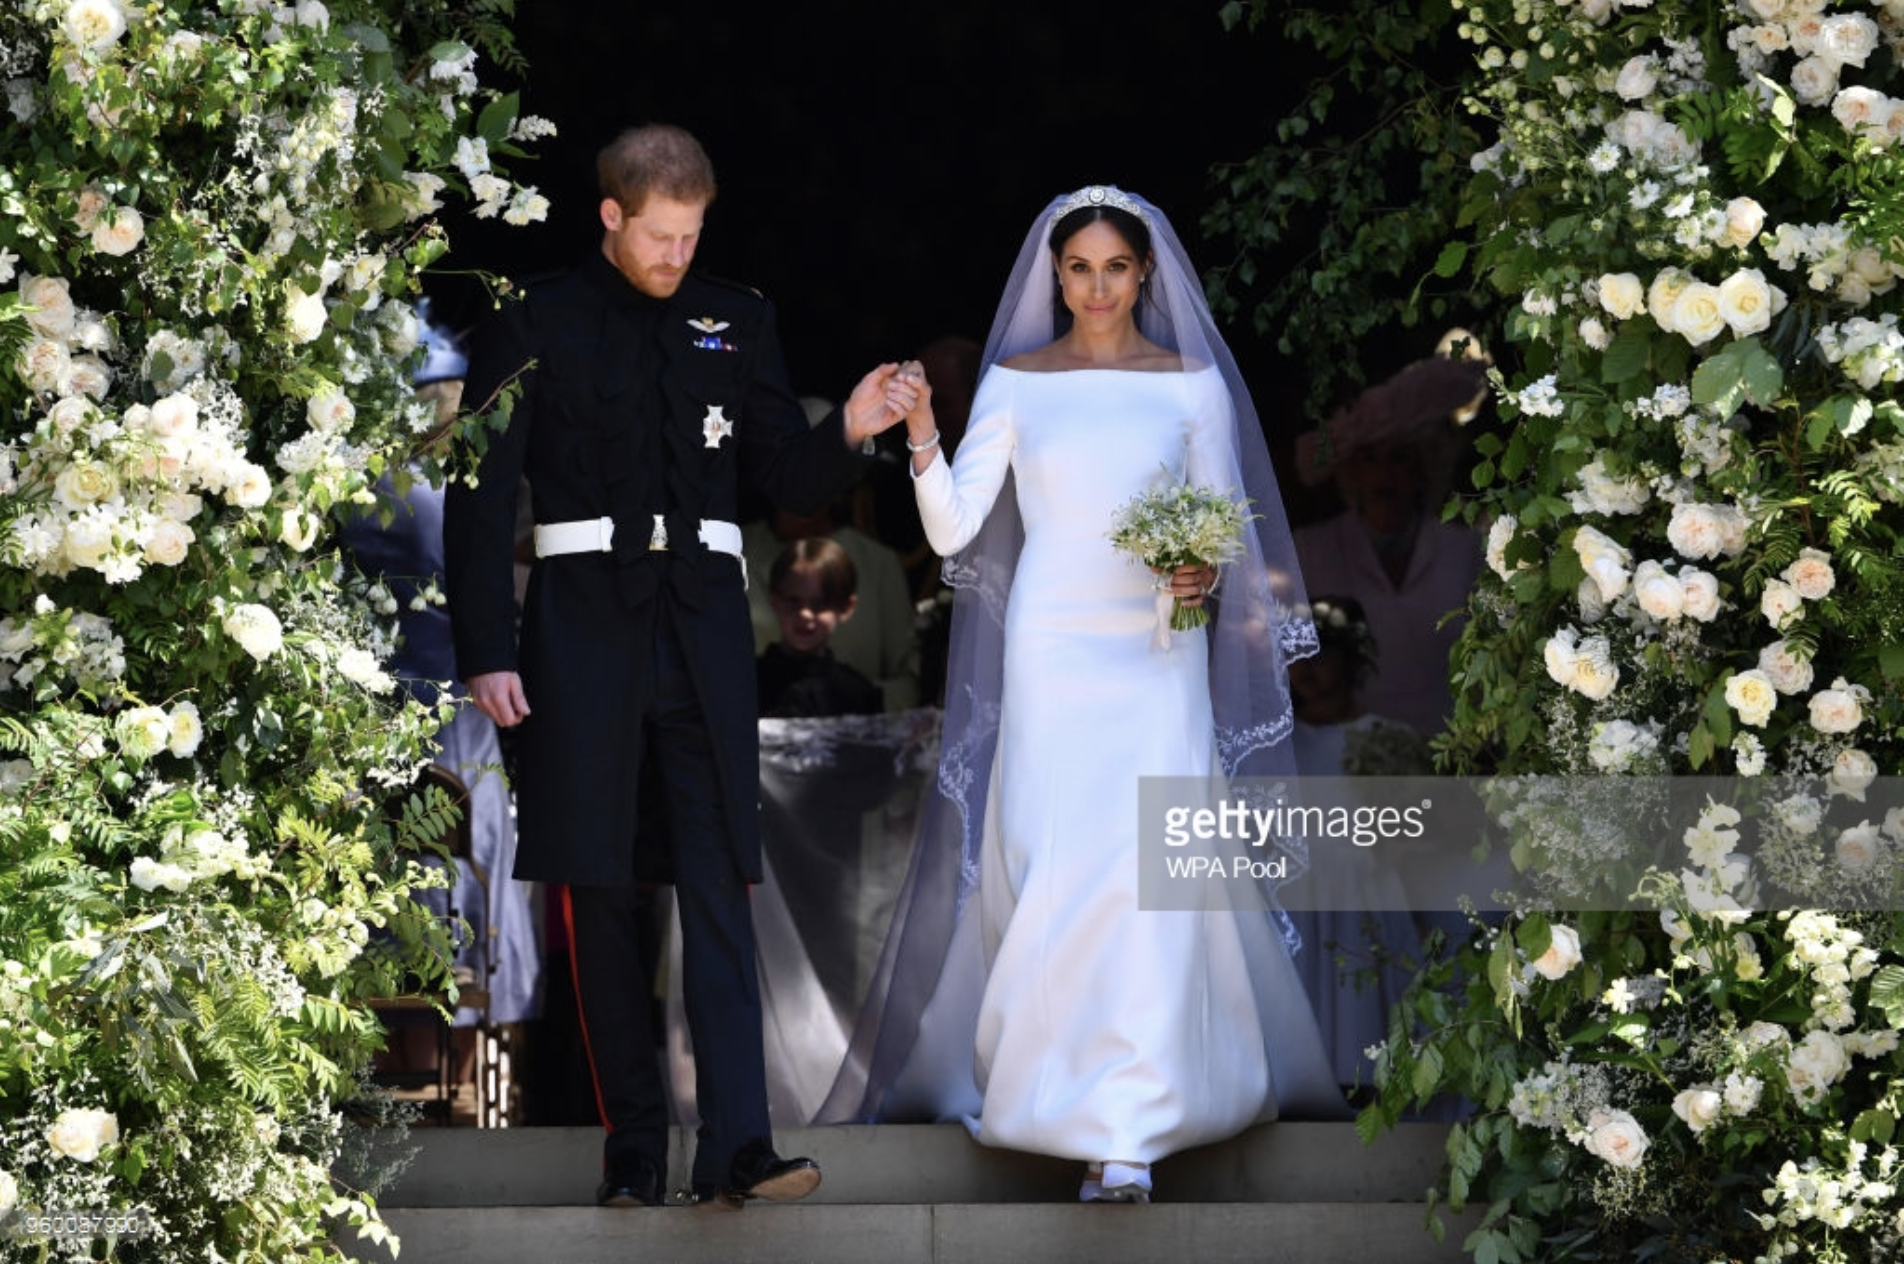 meghan markle s wedding dress unveiled justin alexander meghan markle s wedding dress unveiled